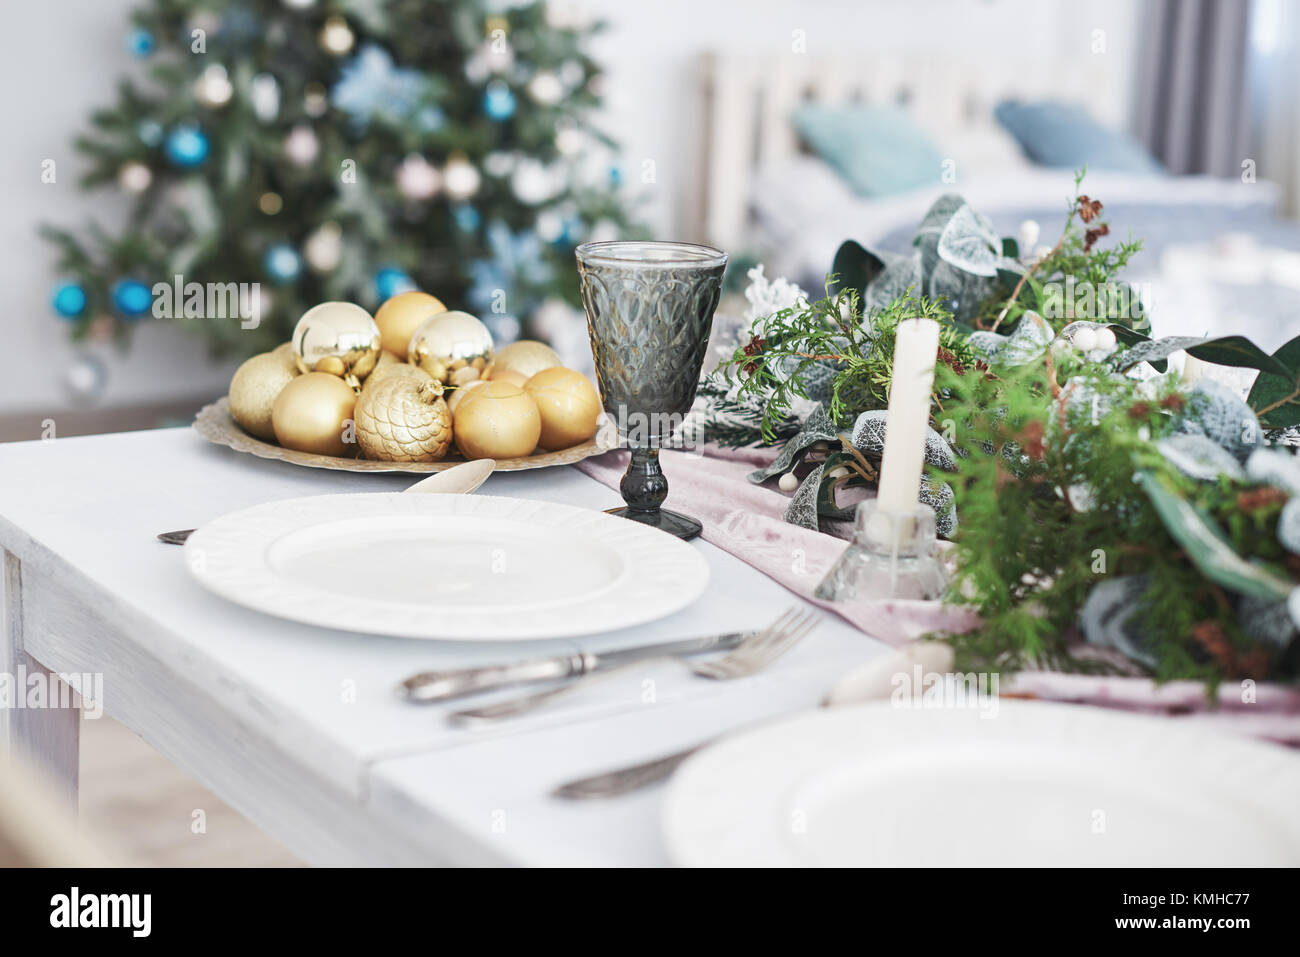 Table served for Christmas dinner in living room, close up view. - Stock Image